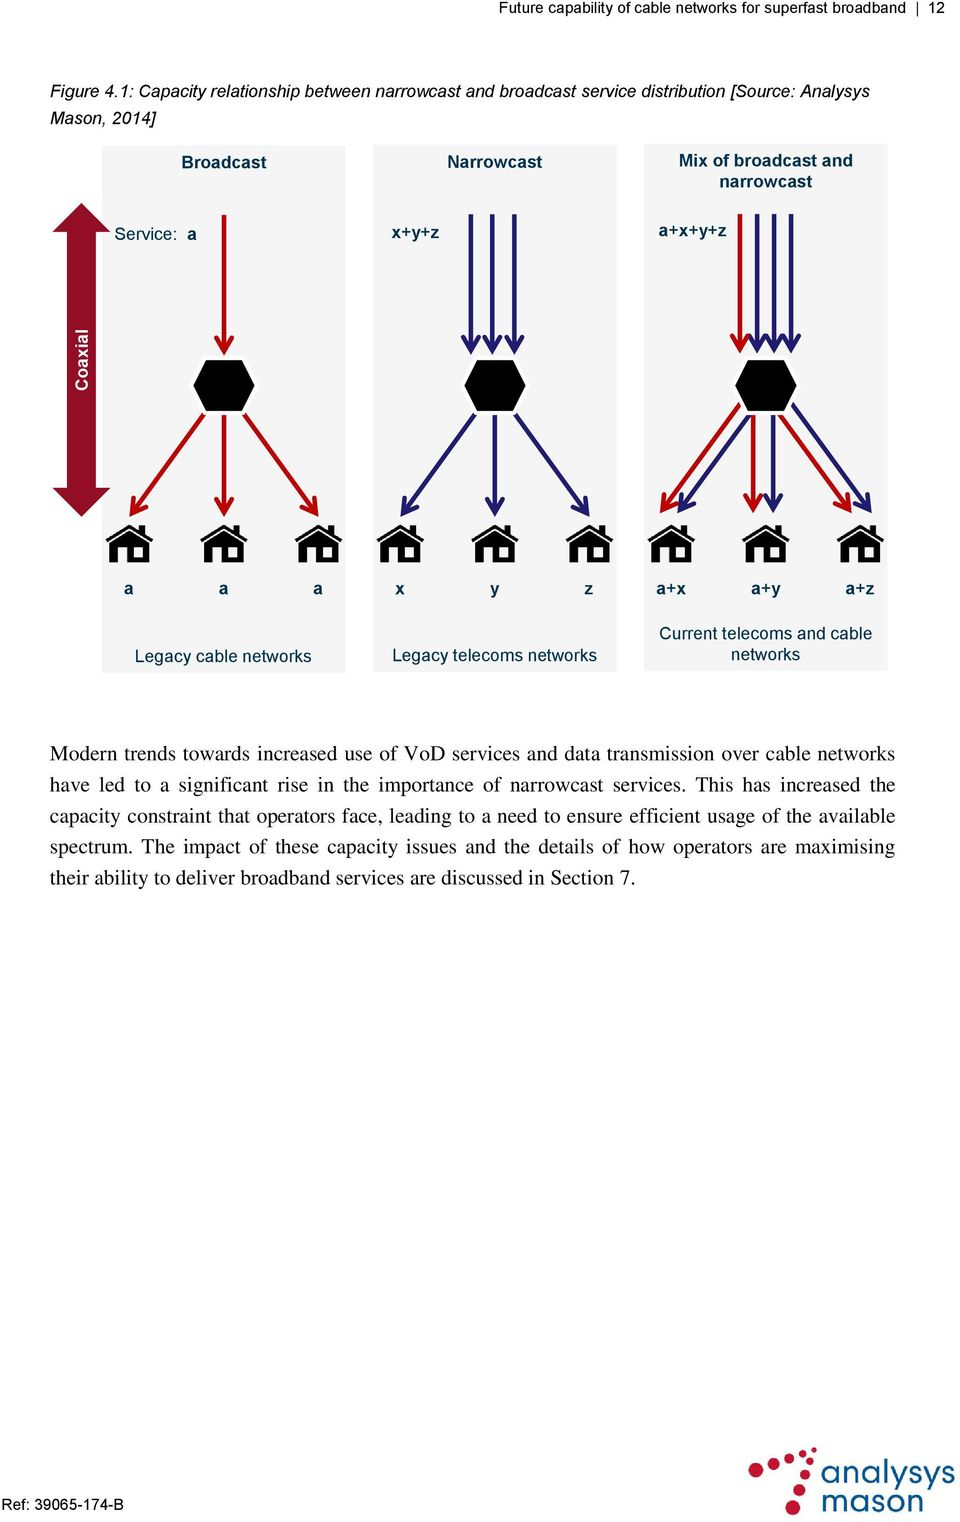 Future Capability Of Cable Networks For Superfast Broadband Pdf Pictnetworkdiagramregionalcableheadenddiagram A X Y Z Legacy Telecoms Current